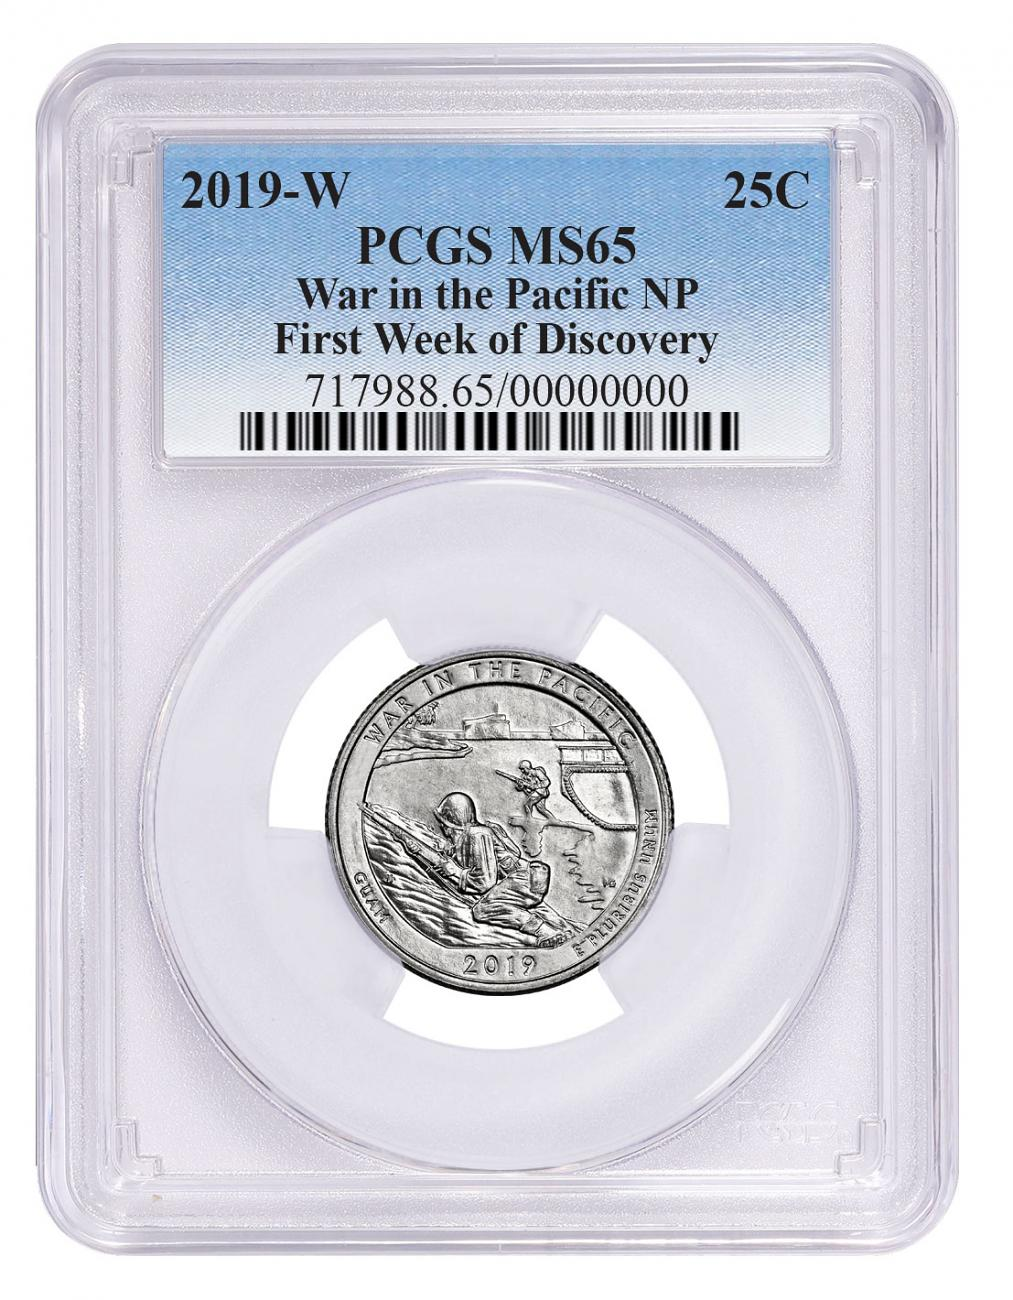 2019-W Clad War in the Pacific - Guam America the Beautiful Quarter PCGS MS65 First Week Issue Blue Label